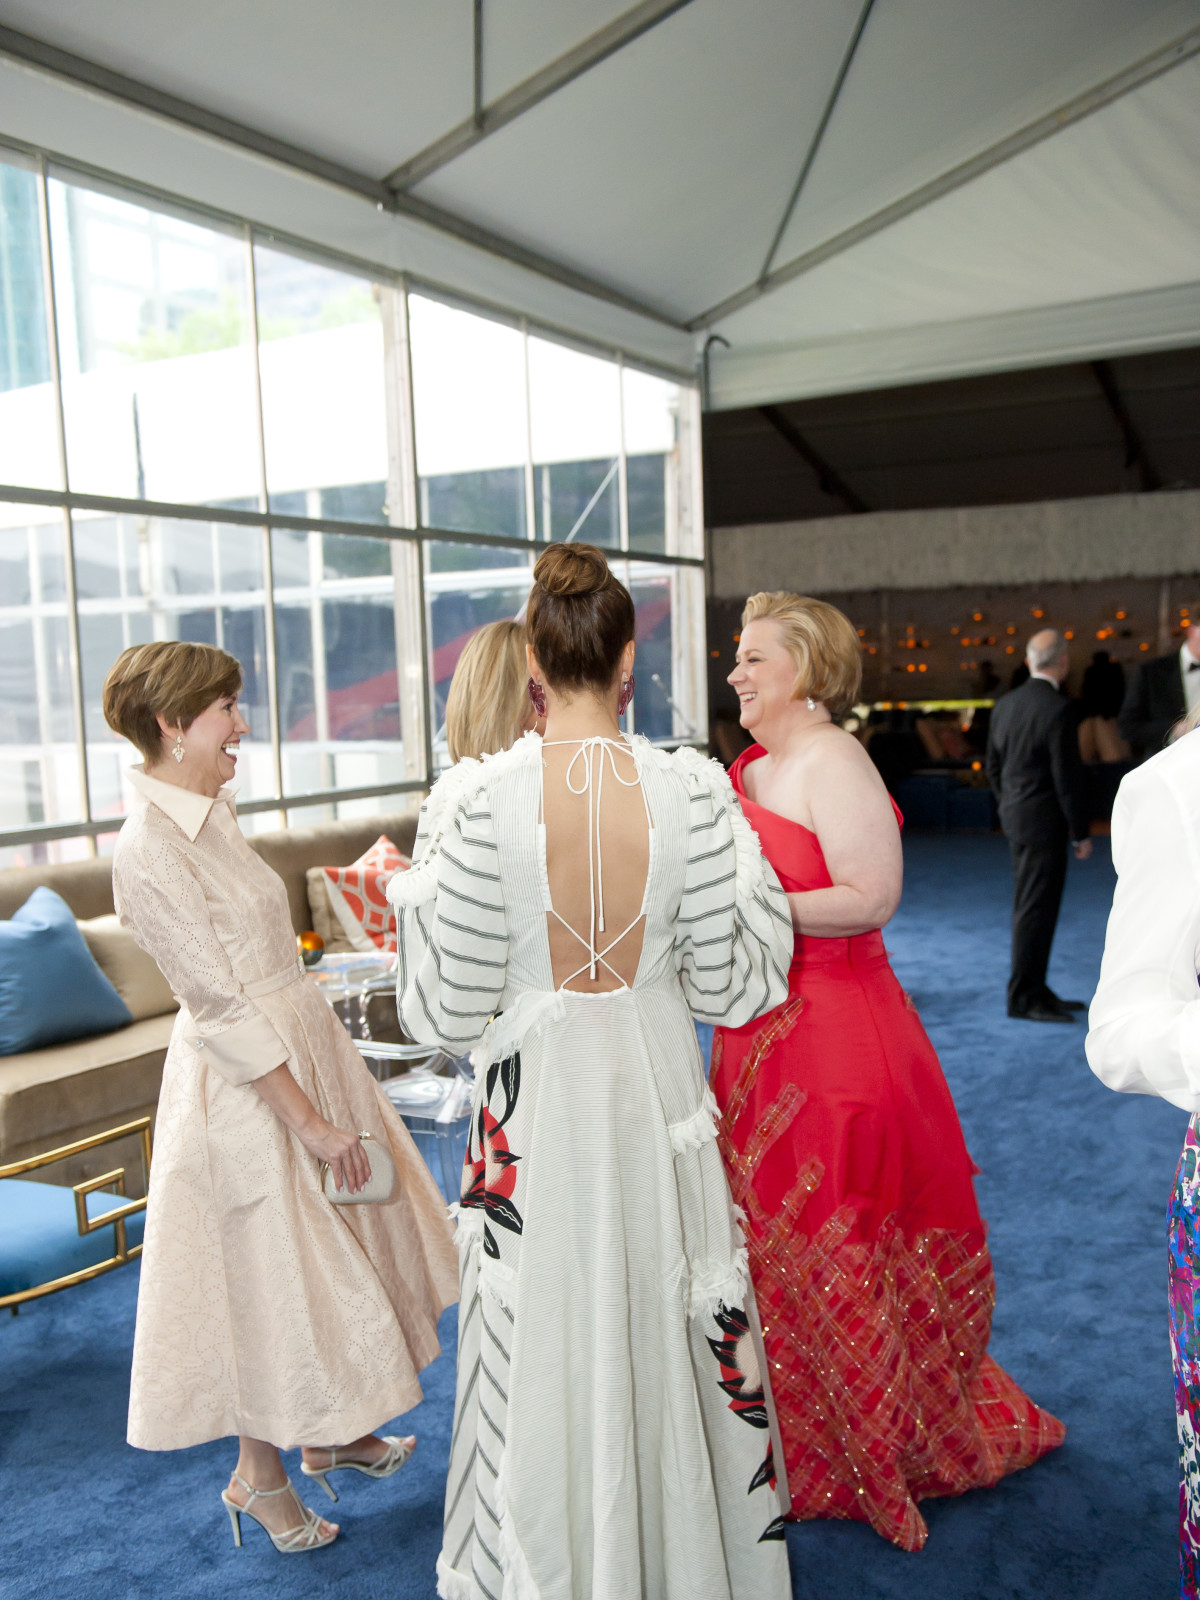 The back of Catherine Rose's dress